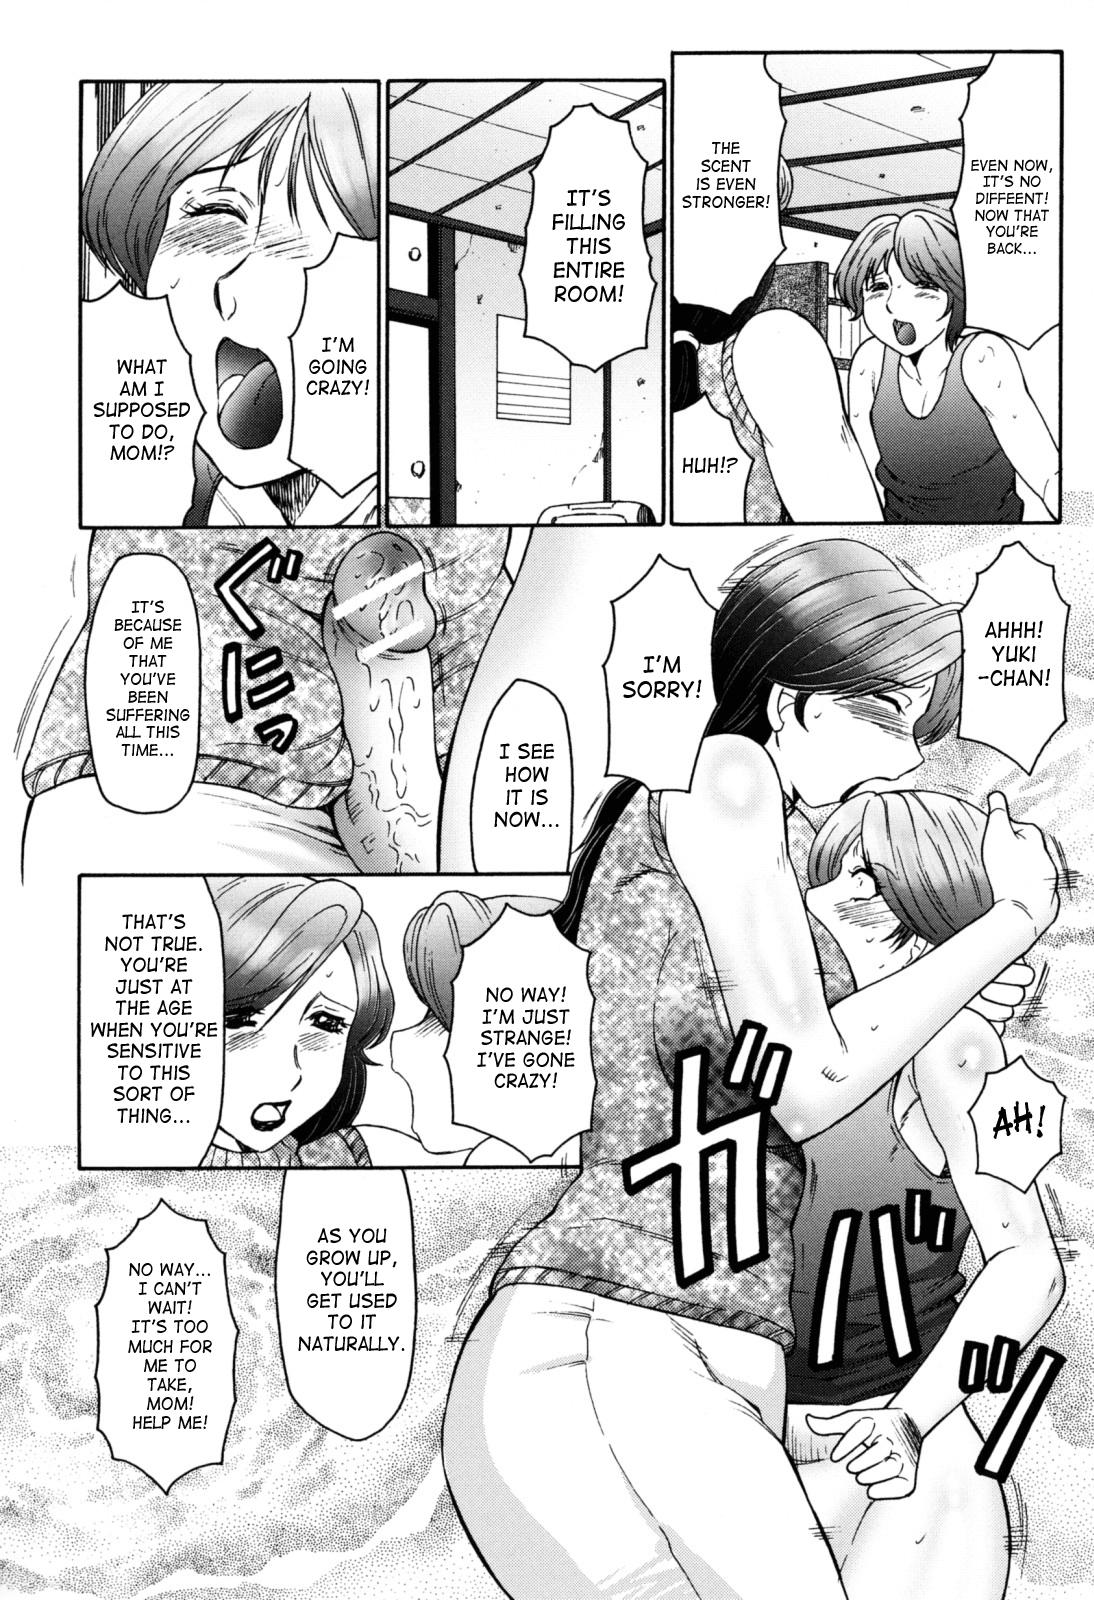 [Fuusen Club] Boshino Toriko - The Captive of Mother and the Son | Enslaved Mother and Son Ch. 1-5 [English] [SaHa] 21